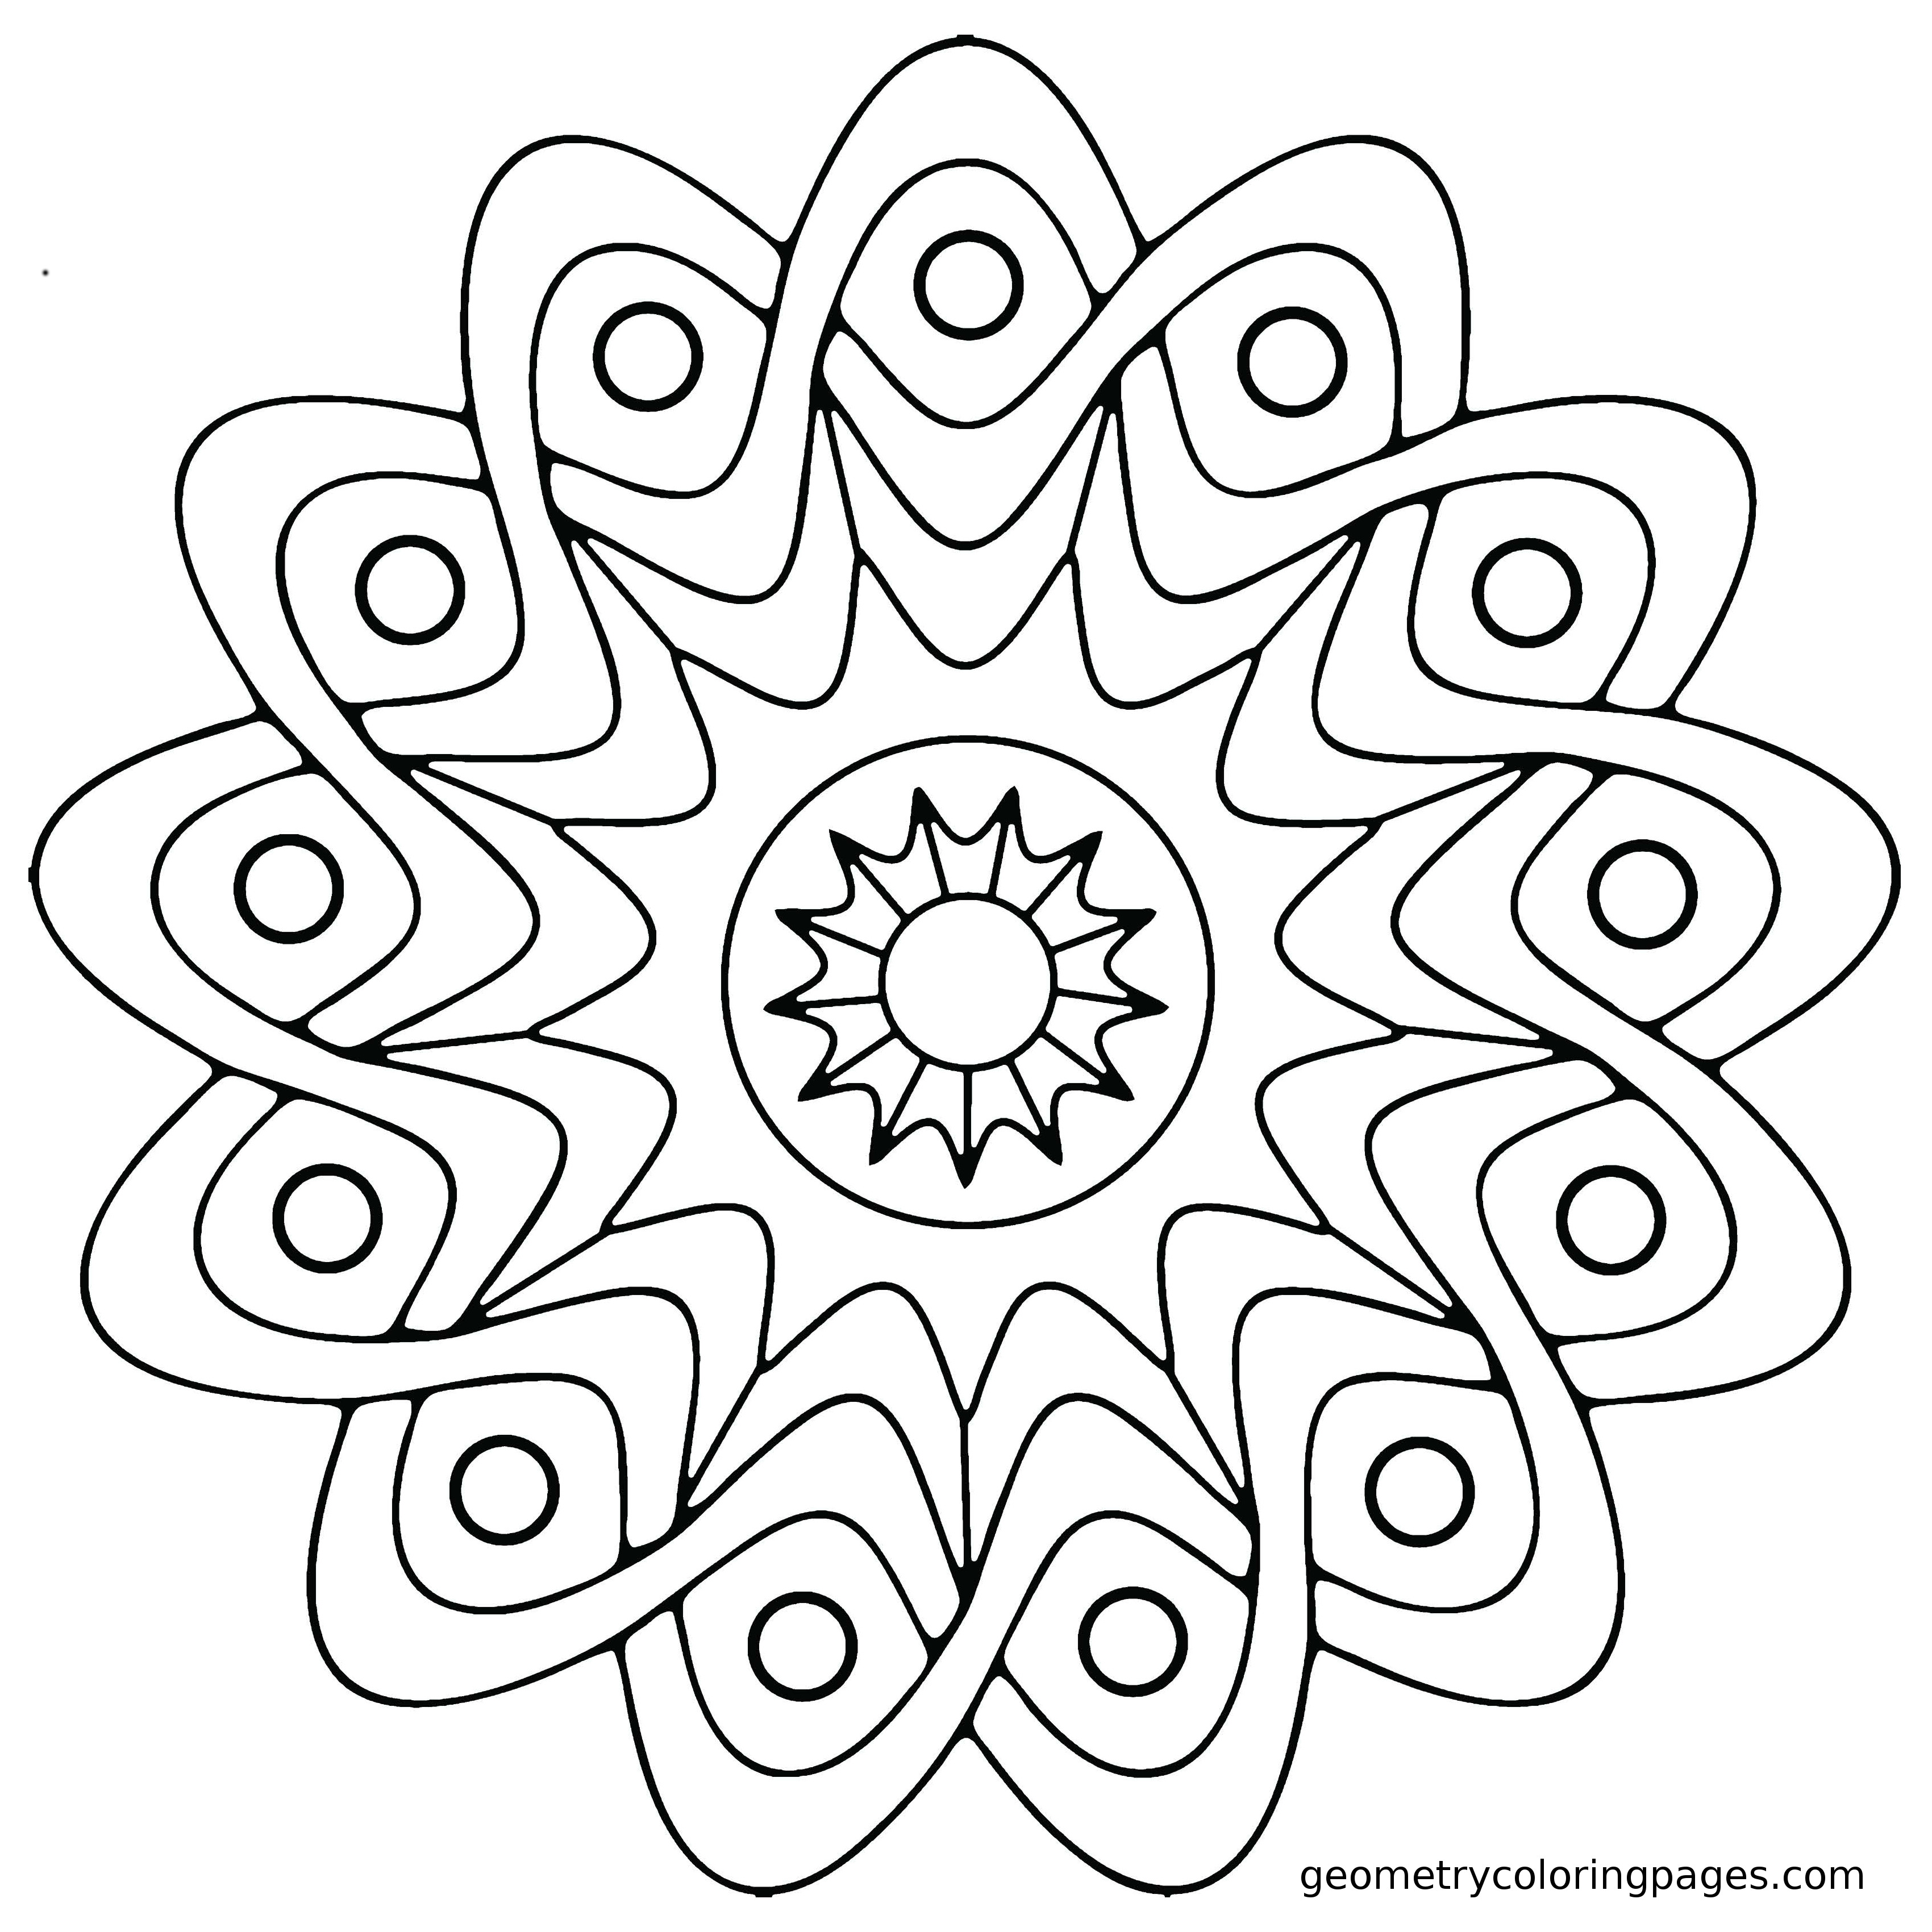 3400x3400 Mandala Coloring Pages Pdf Easy